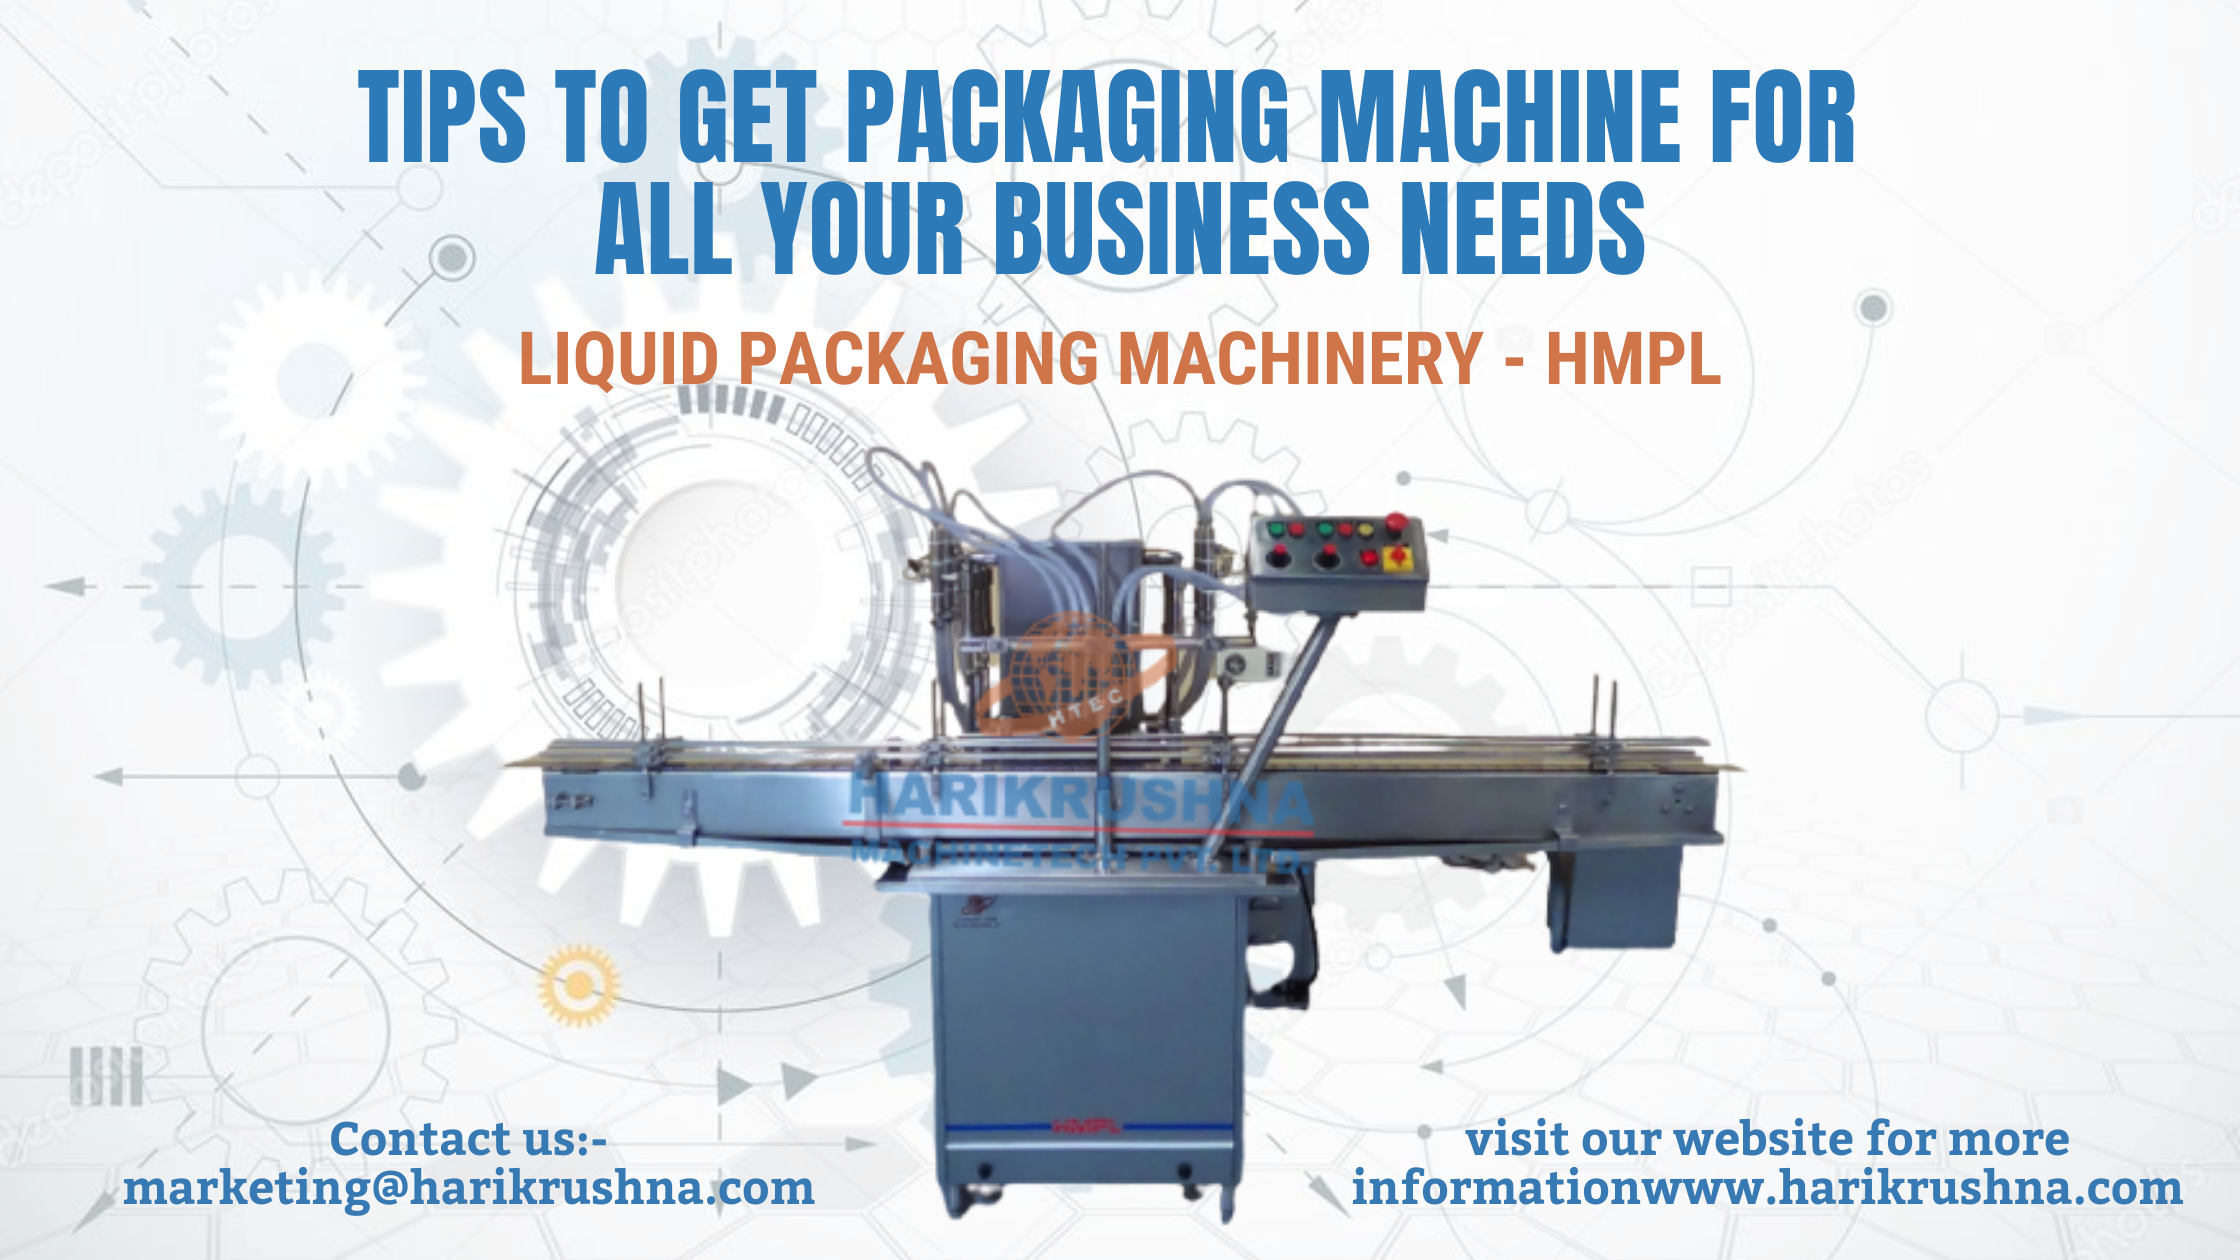 Tips to Get Packaging Machine for All Your Business Needs